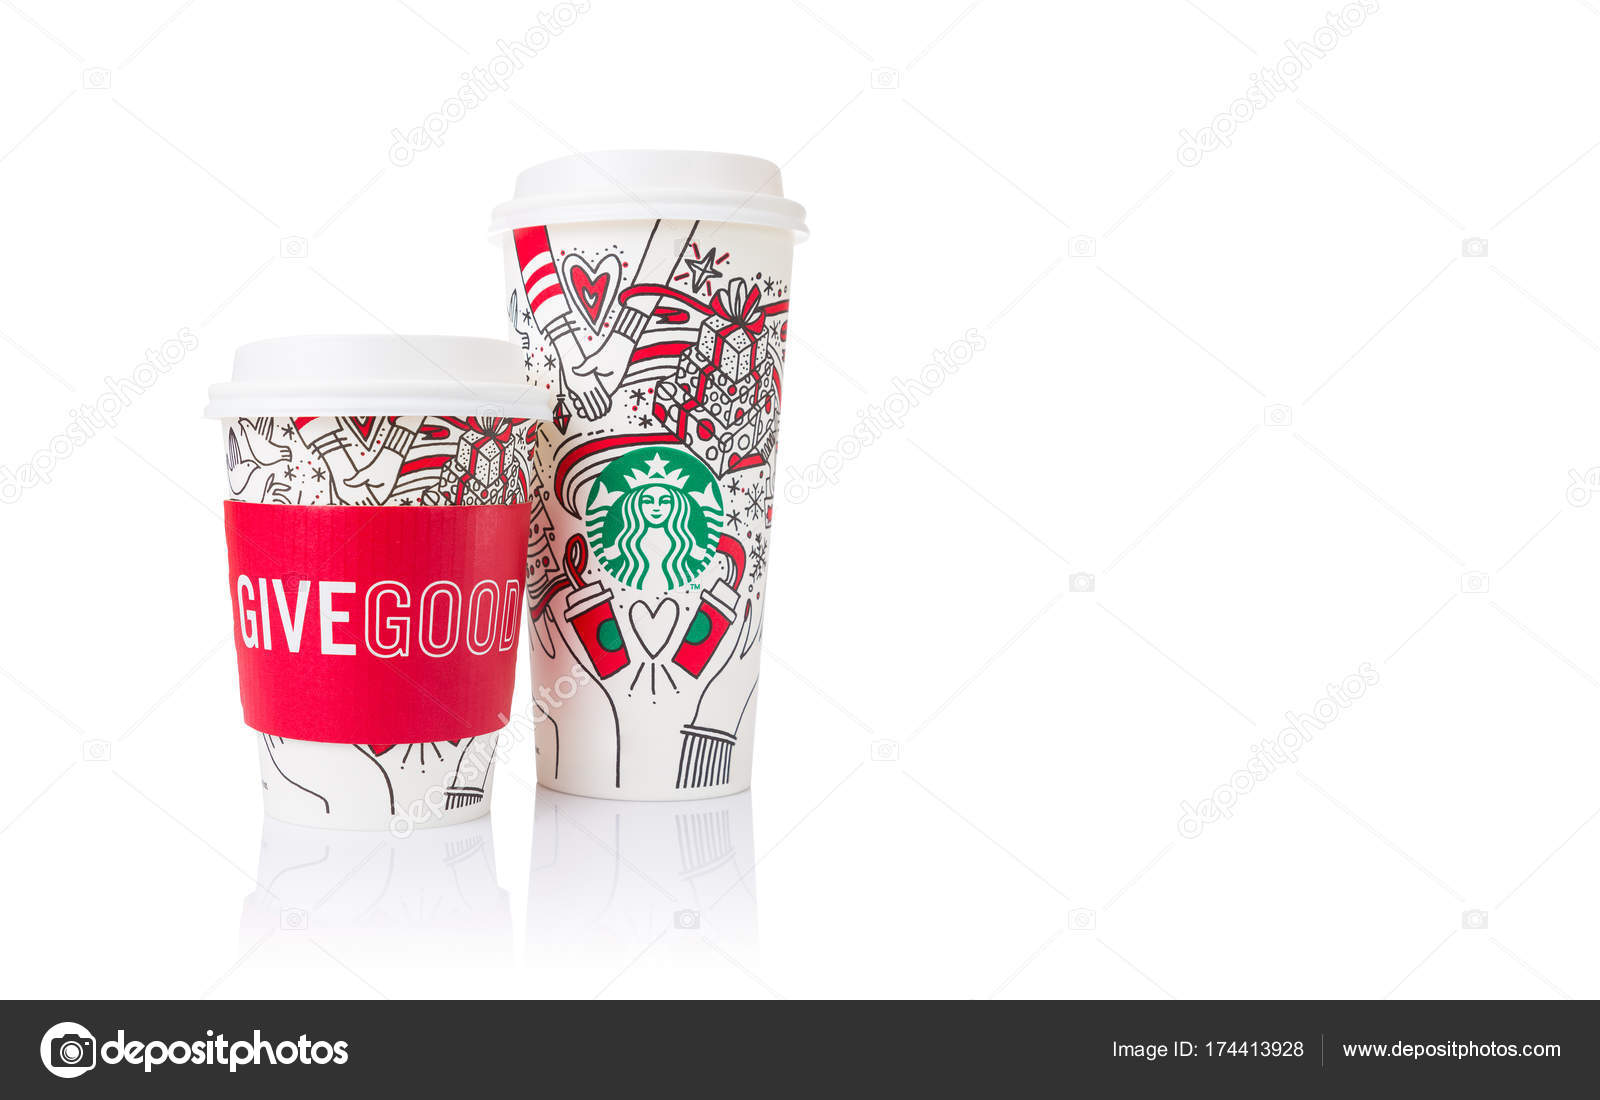 2 sizes, Grande and Venti, of Starbucks Coffee paper cups in bea ...